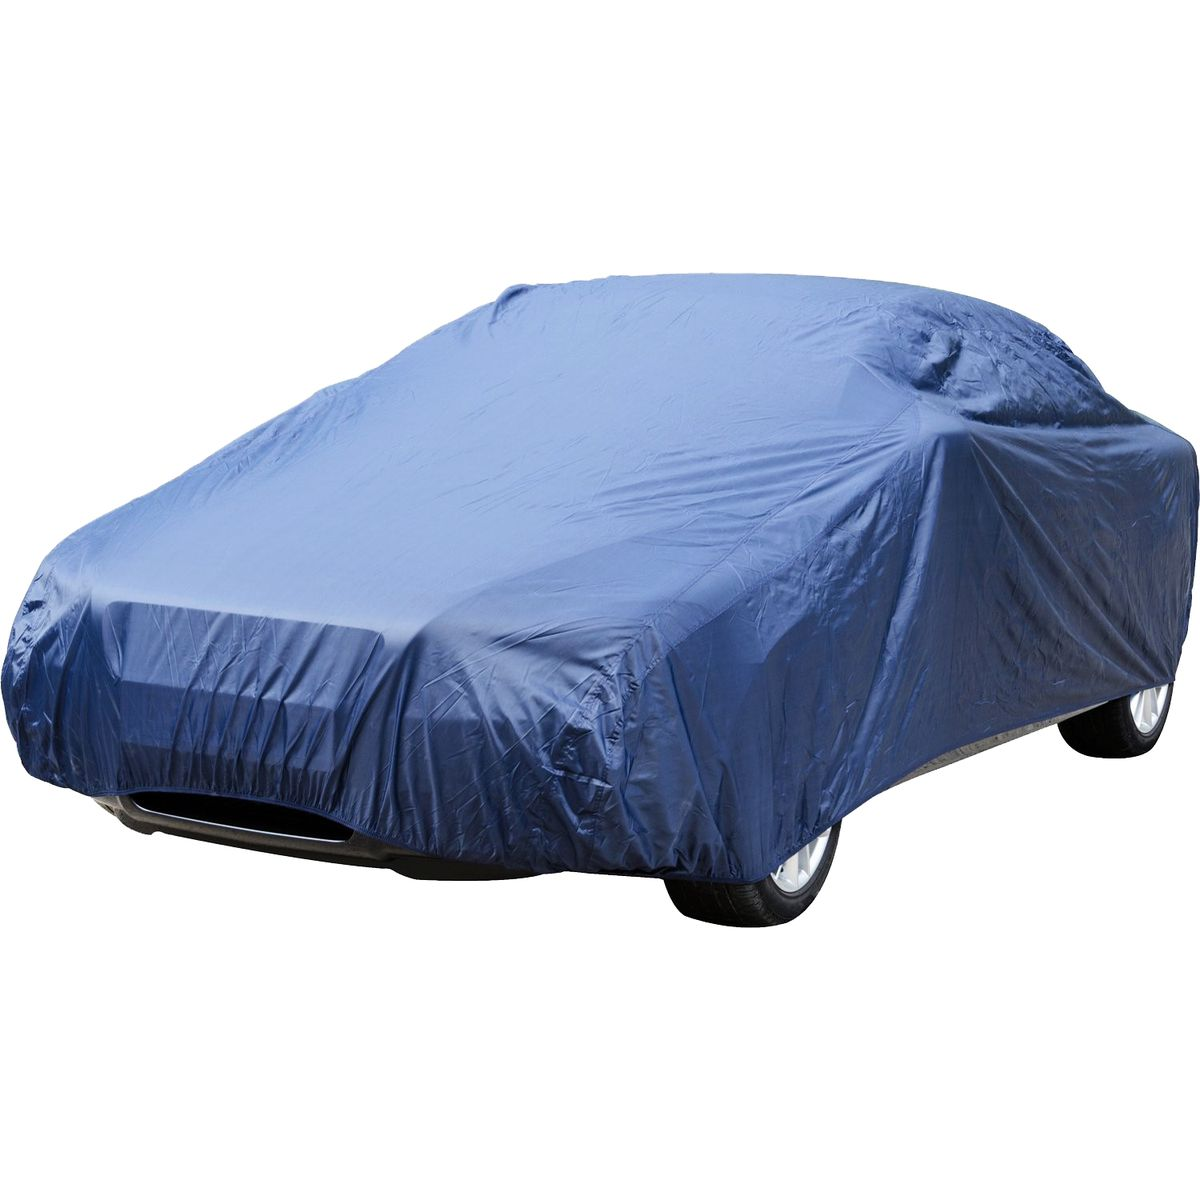 Car Cover with Storage Bag (Large)